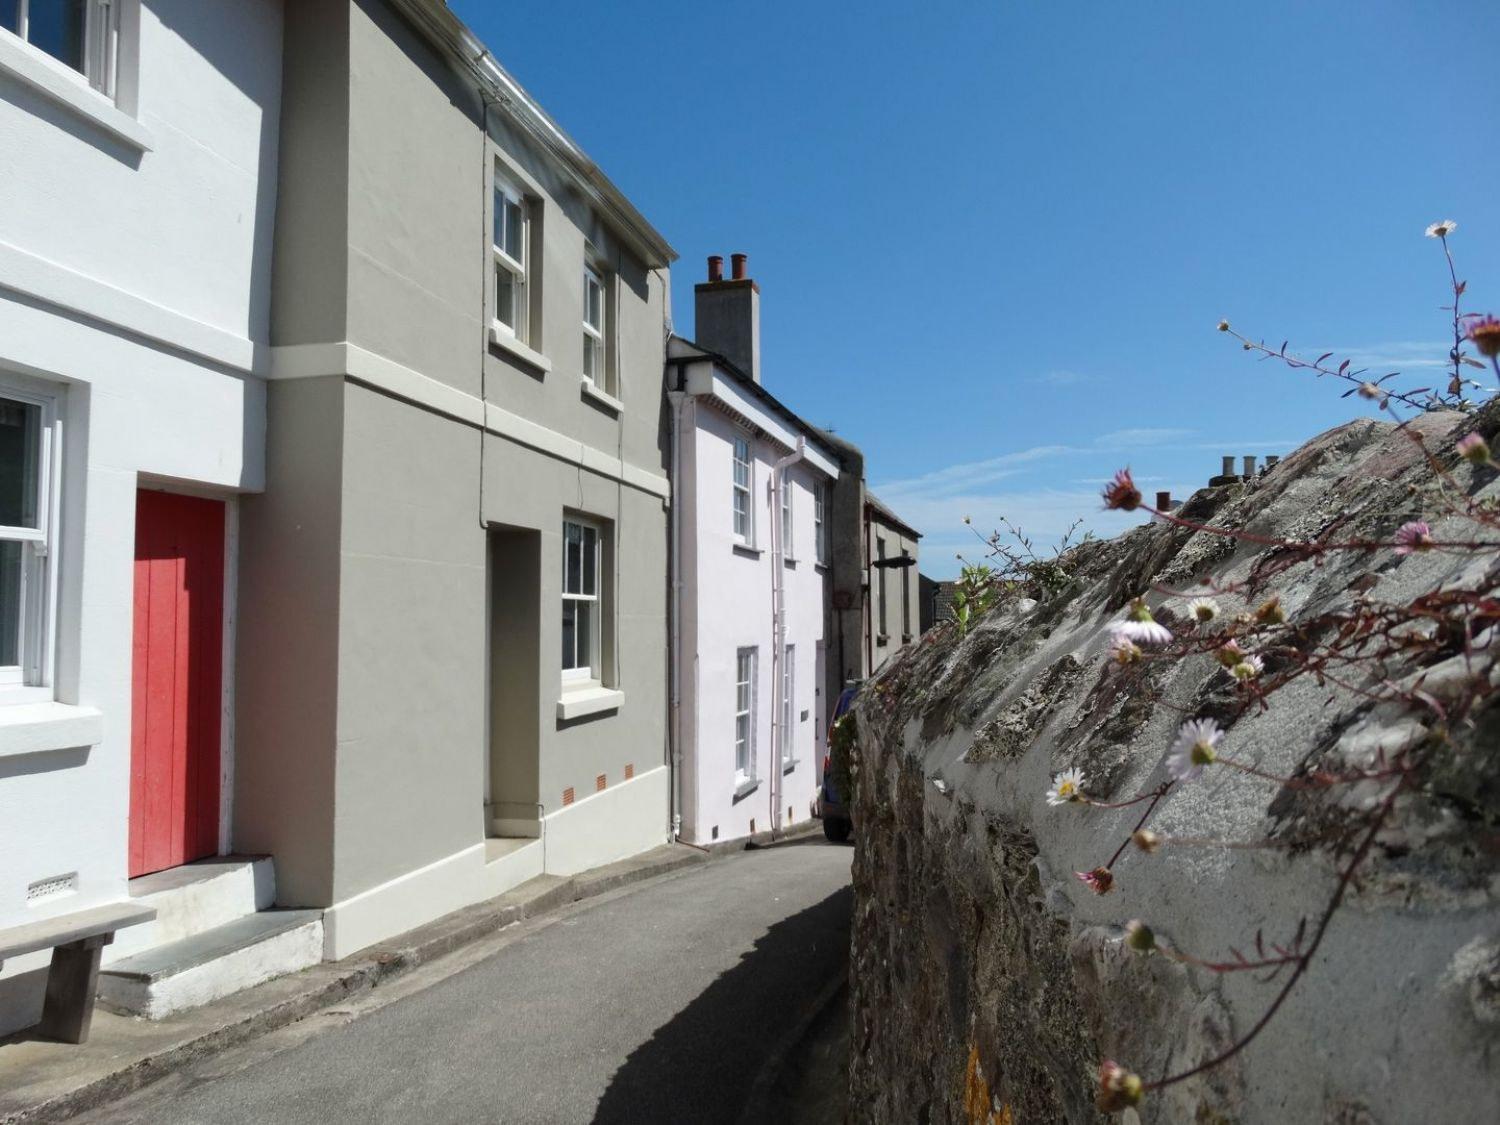 16 St Andrews Street - Cornwall - 976412 - photo 1